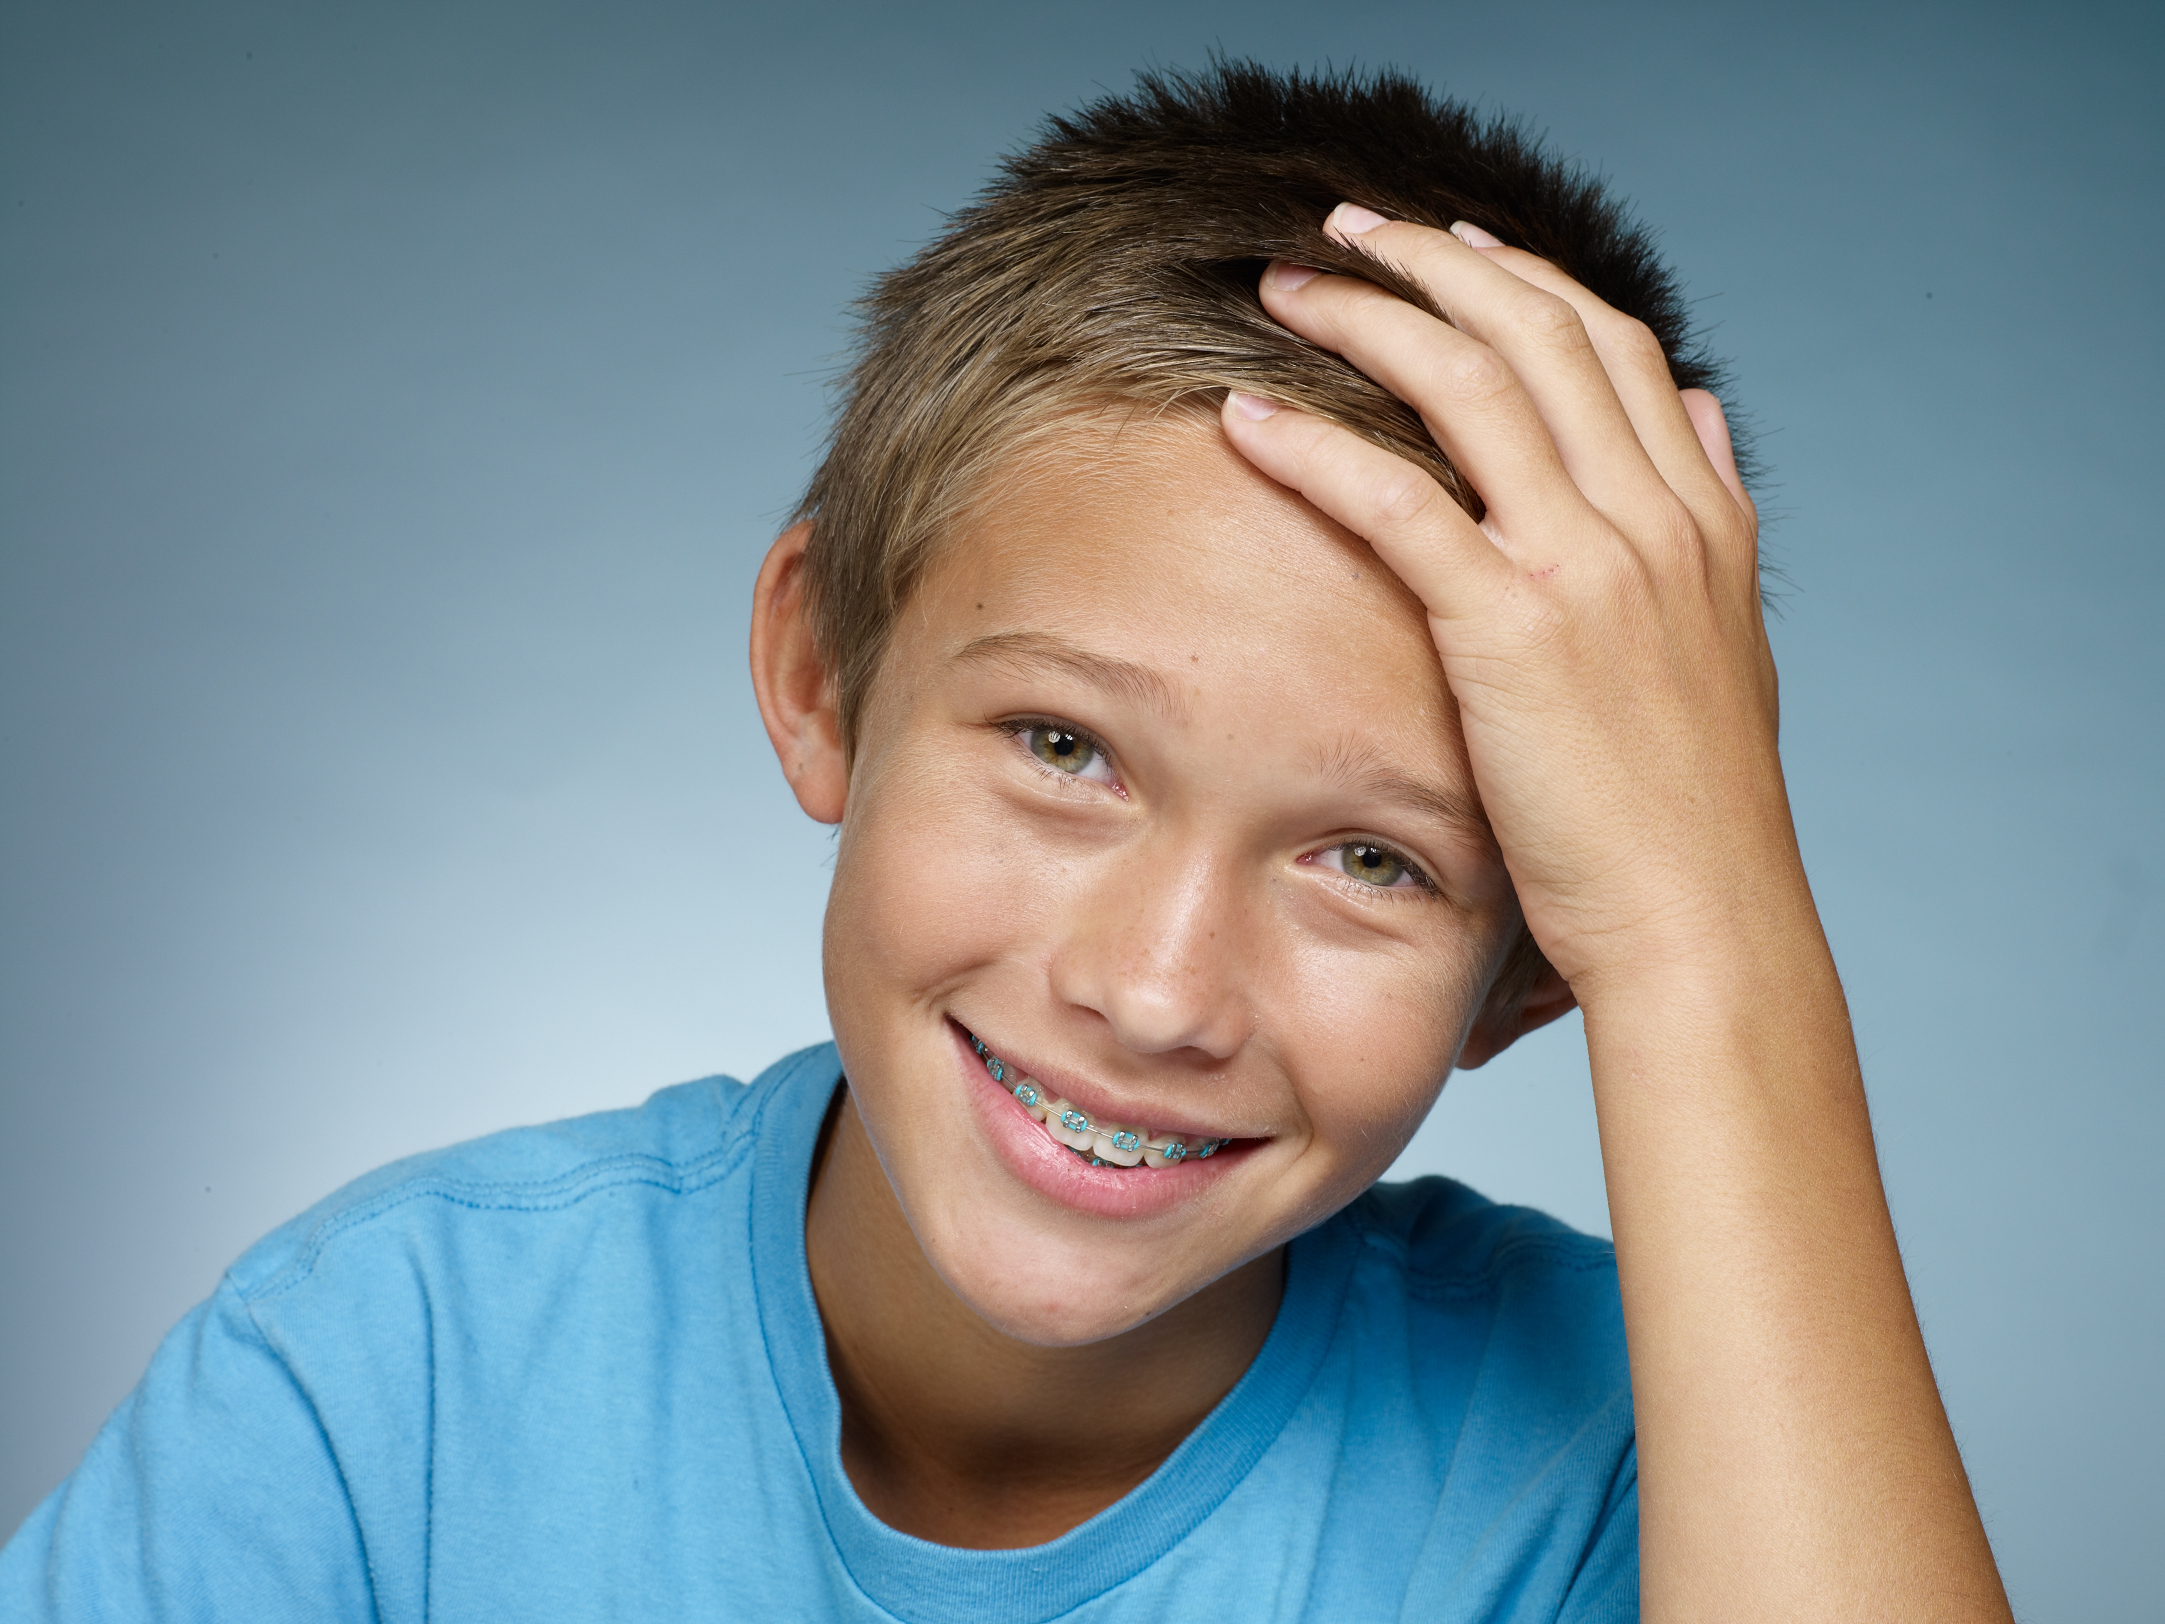 Boy with Braces holding head